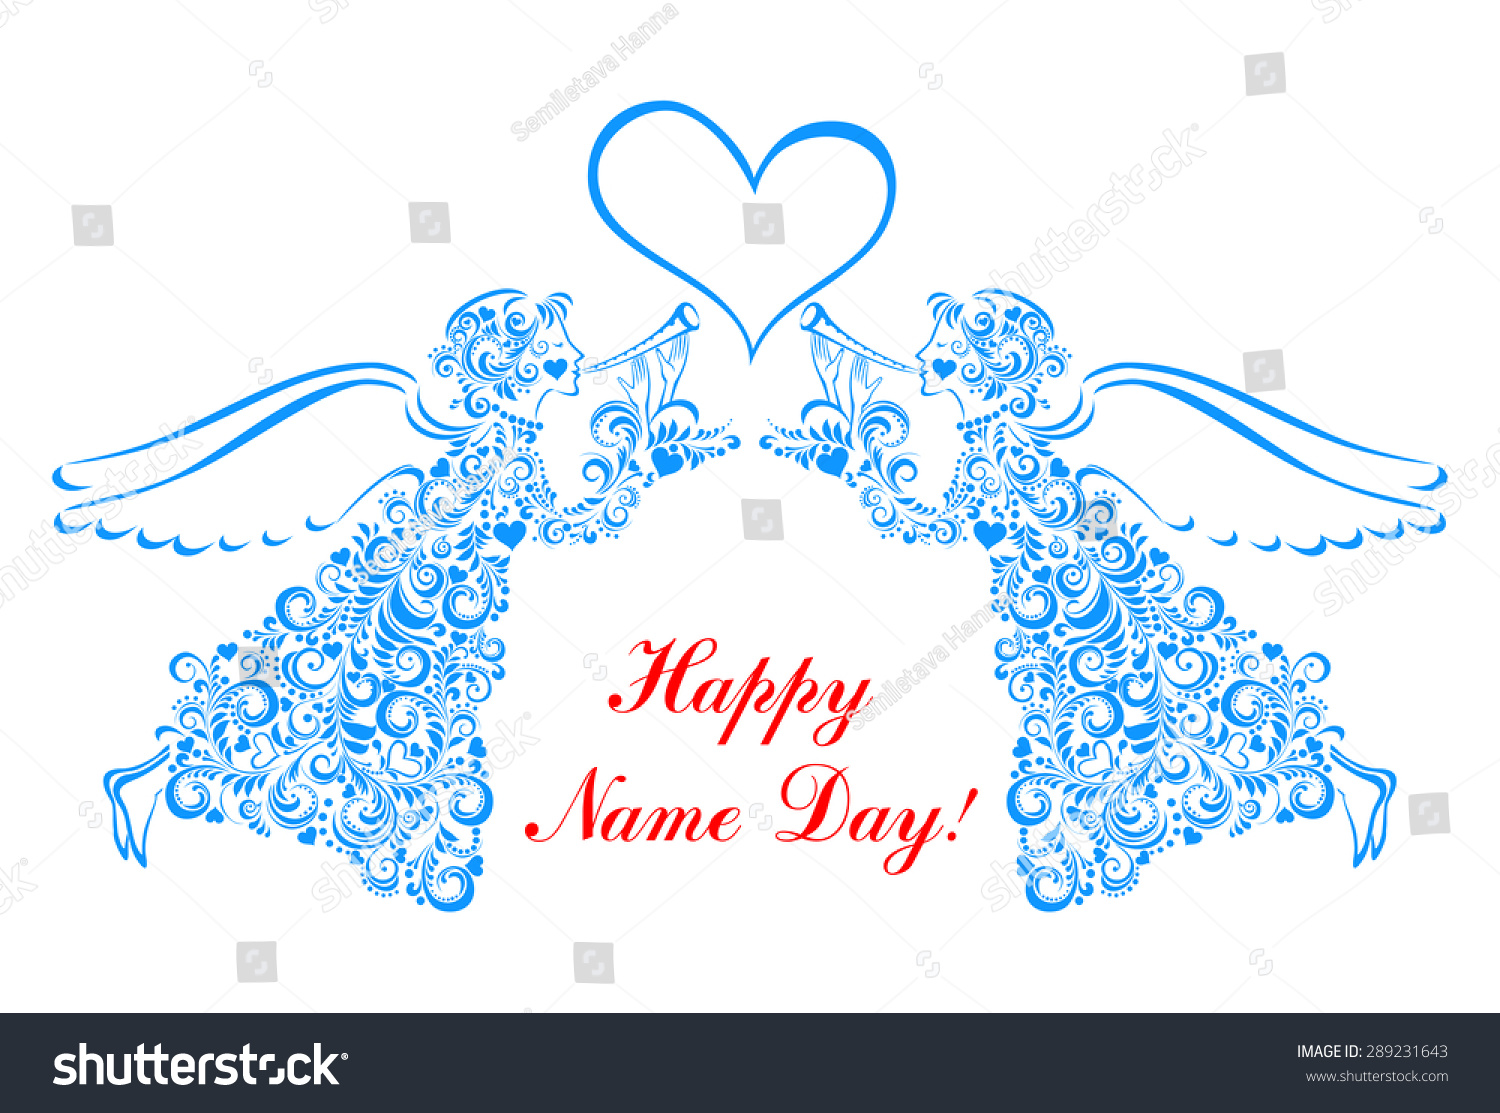 Name Day - Angel Day. Congratulations on Angel Day 7